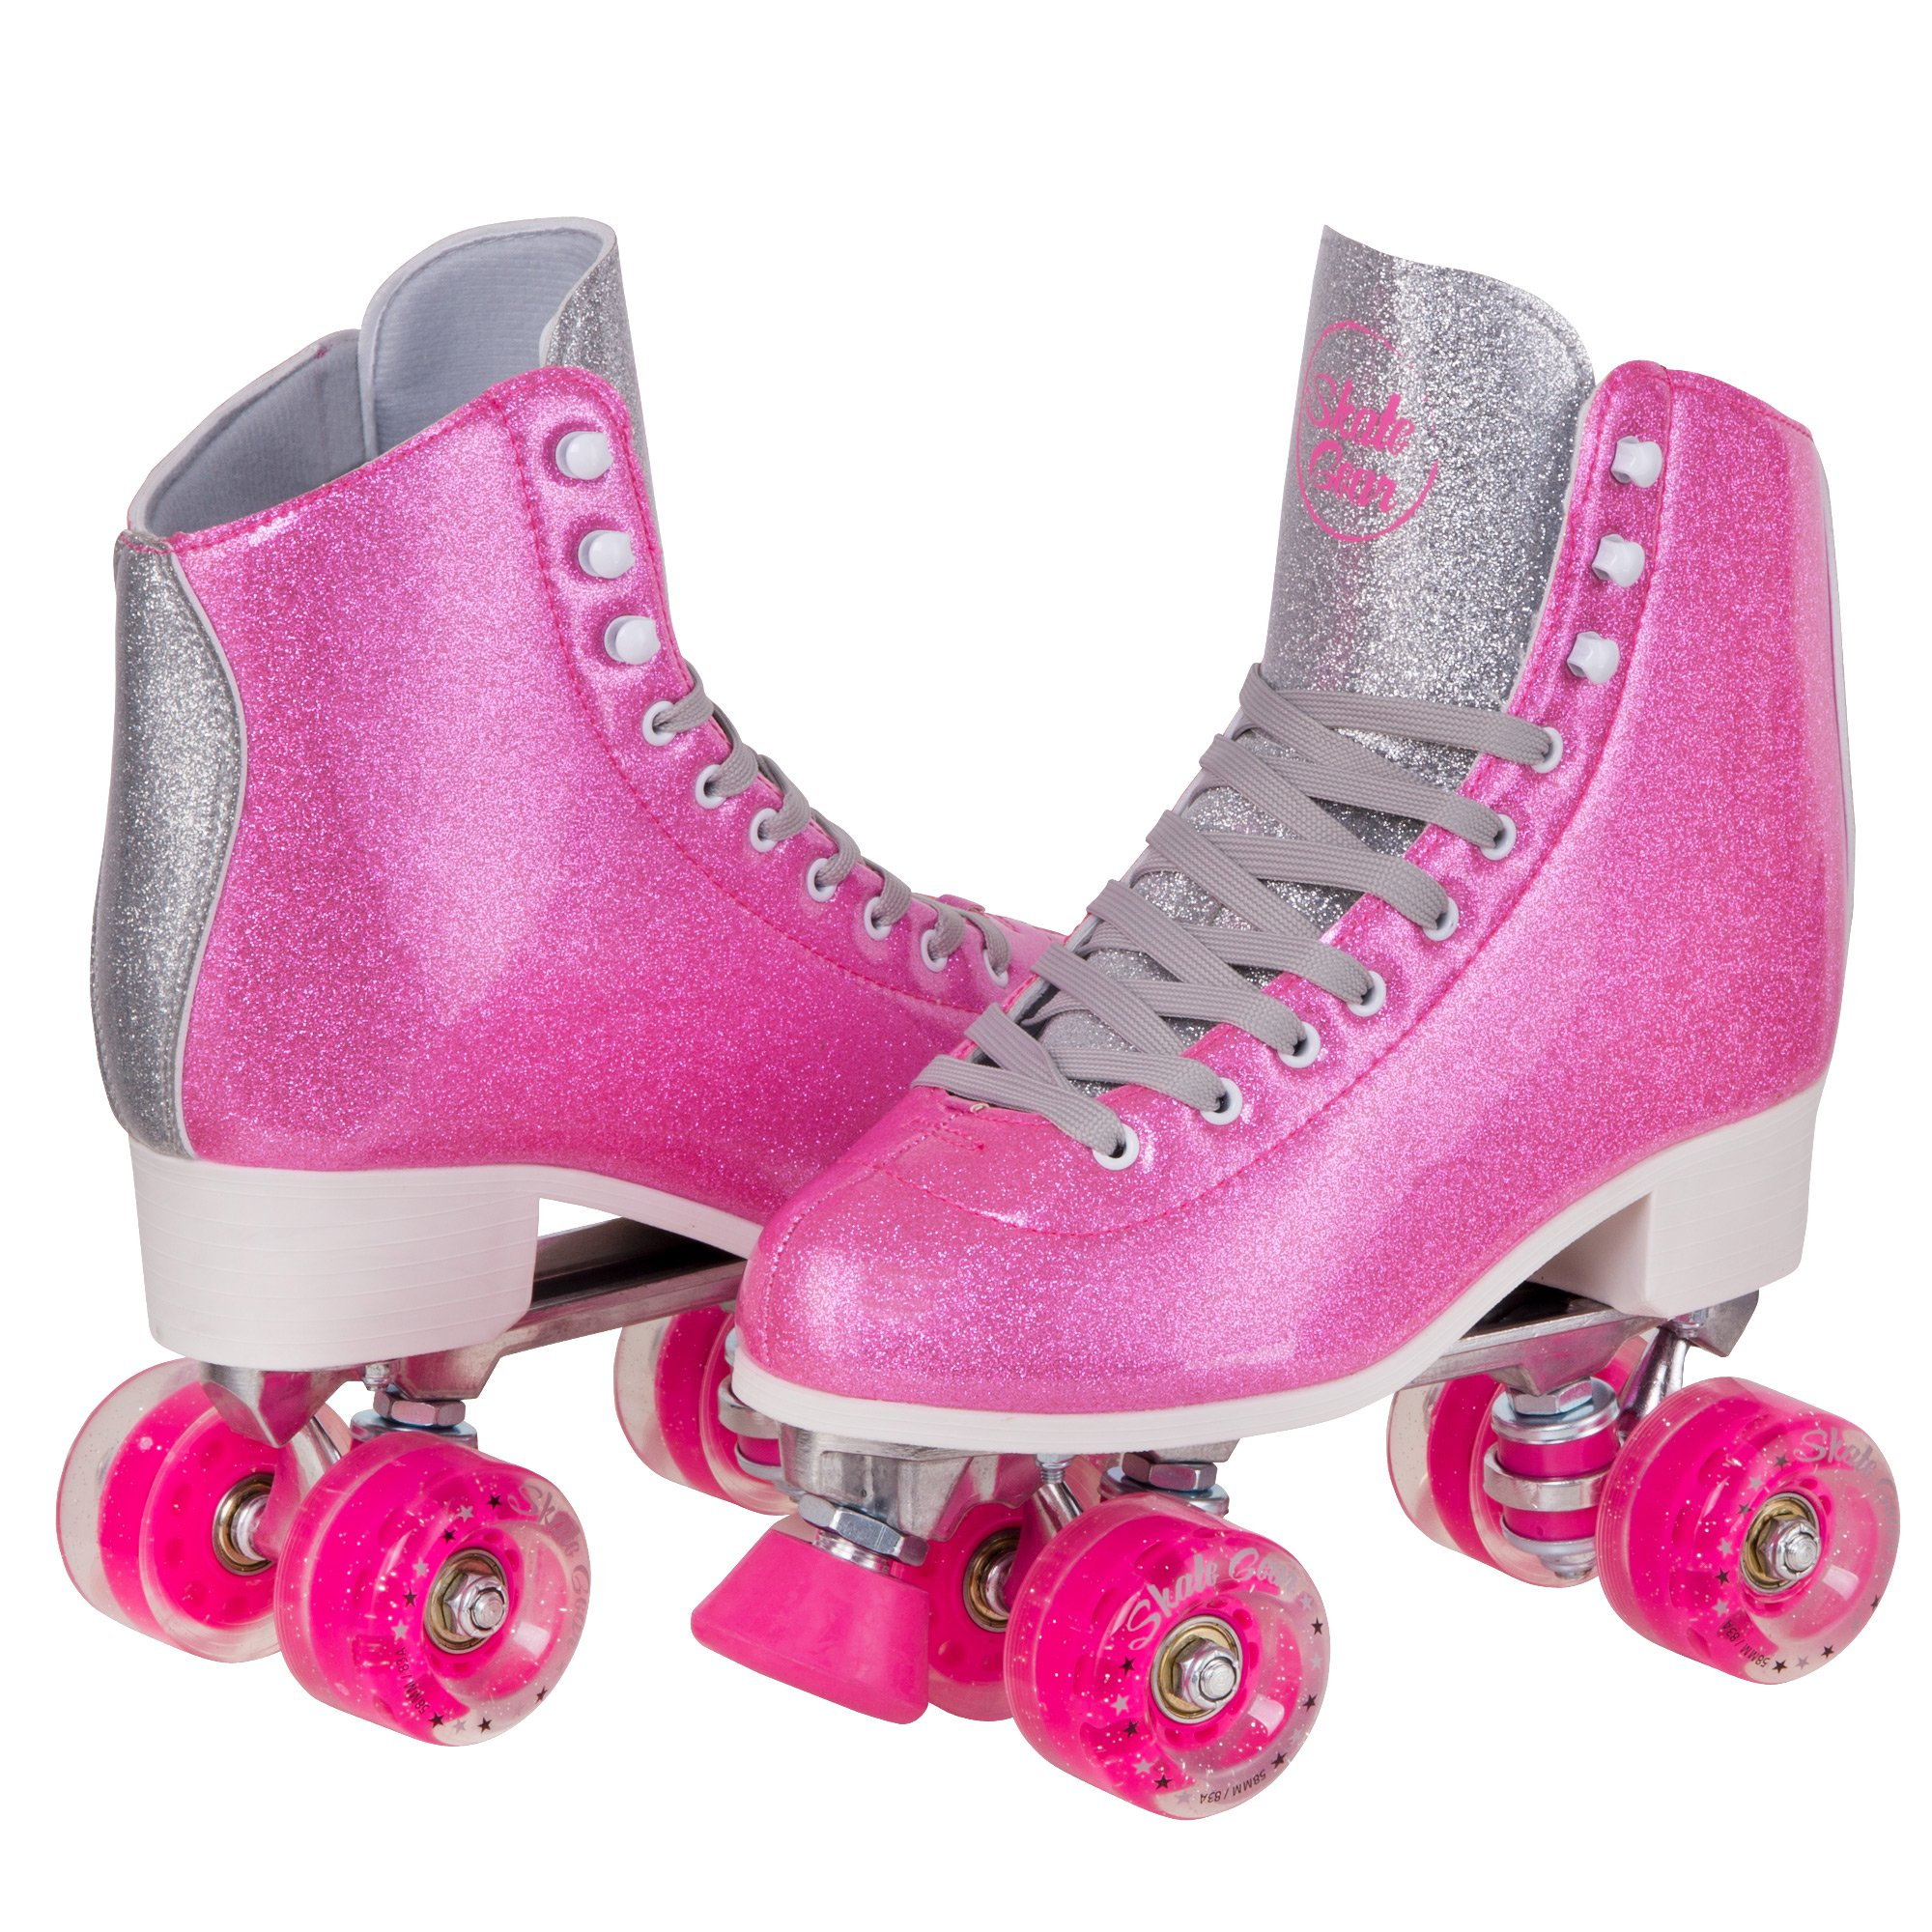 Cal 7 Sparkly Roller Skates for Indoor & Outdoor Skating, Faux Leather Quad Skate with Ankle Support & 83A PU Wheels for Kids & Adults (Pink, Youth 6 / Men's 6 / Women's 7)